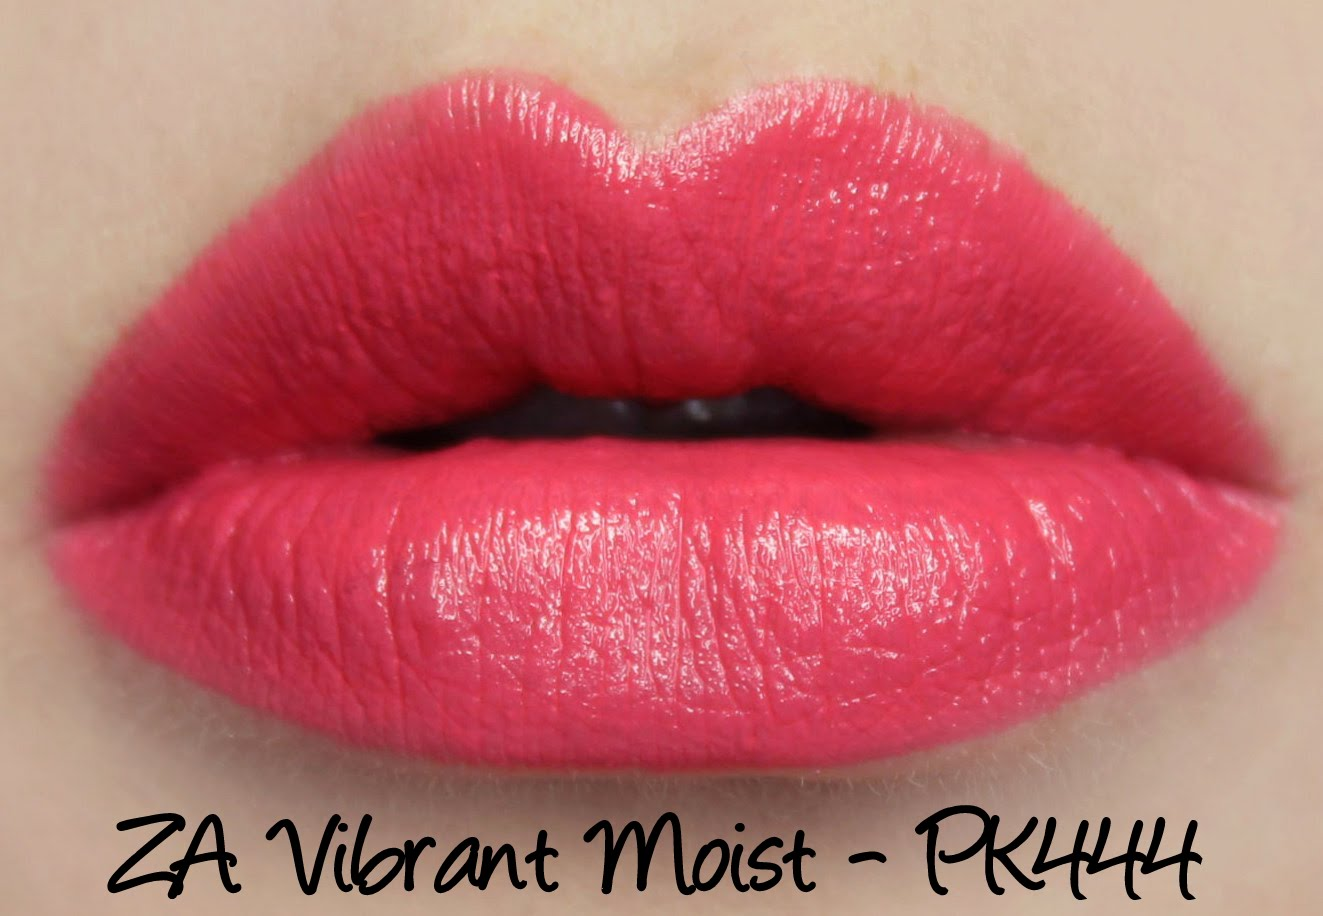 ZA Vibrant Moist Lipstick - PK444 swatches & review